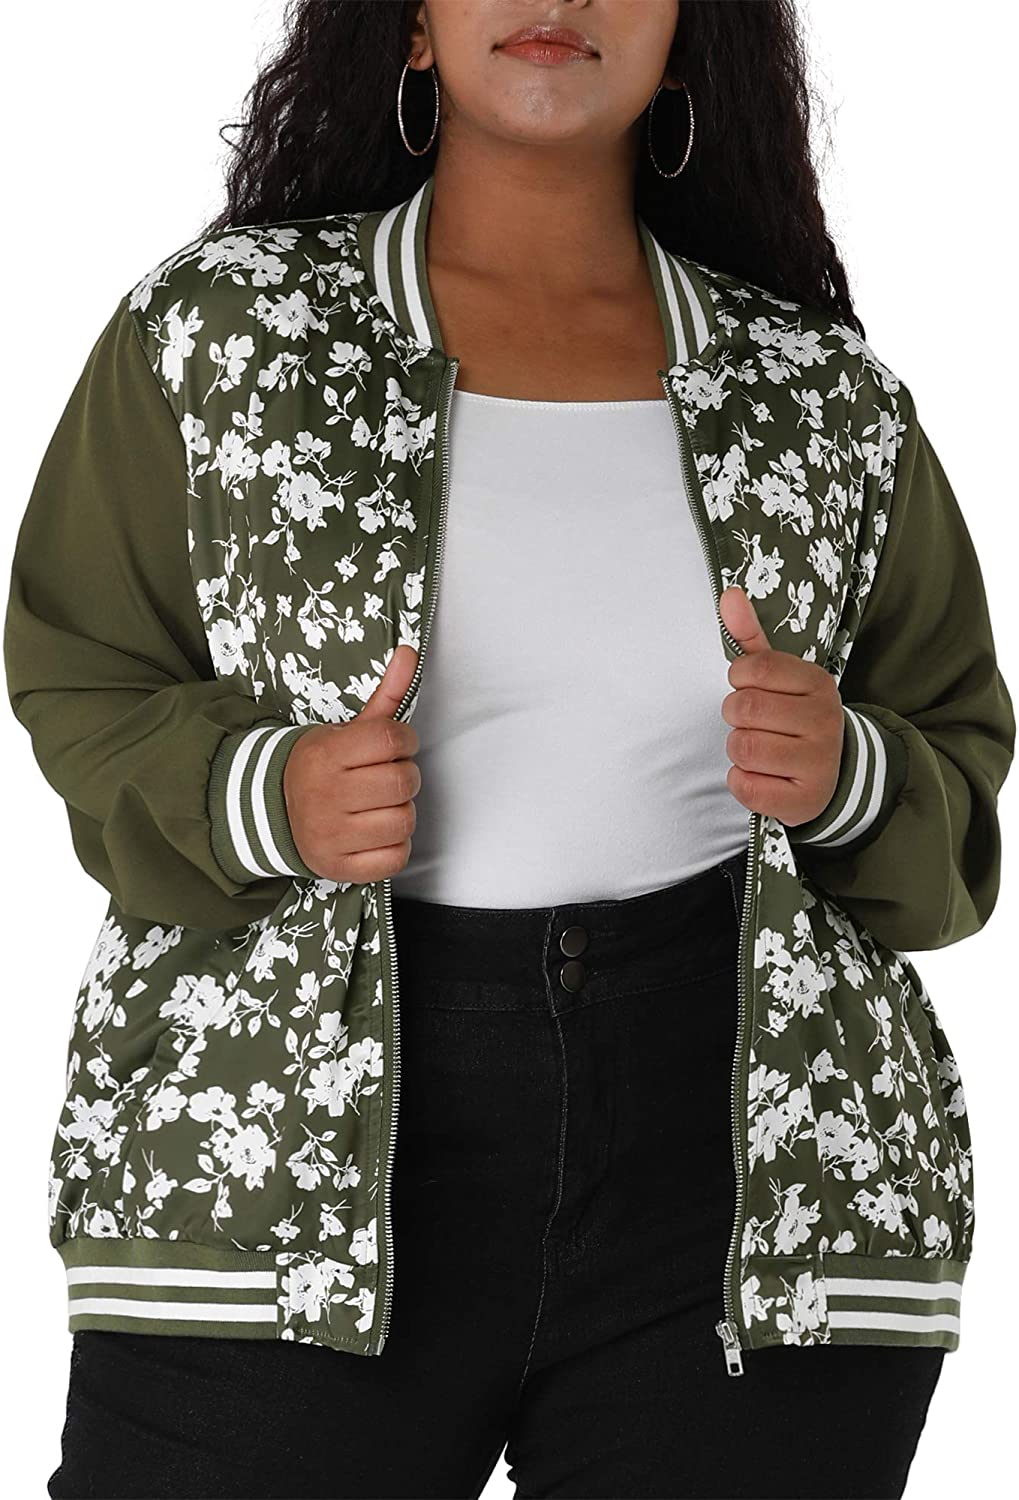 Agnes Orinda Women's Plus Size Save money Color Contrast Lightweigh Cheap mail order shopping Jackets